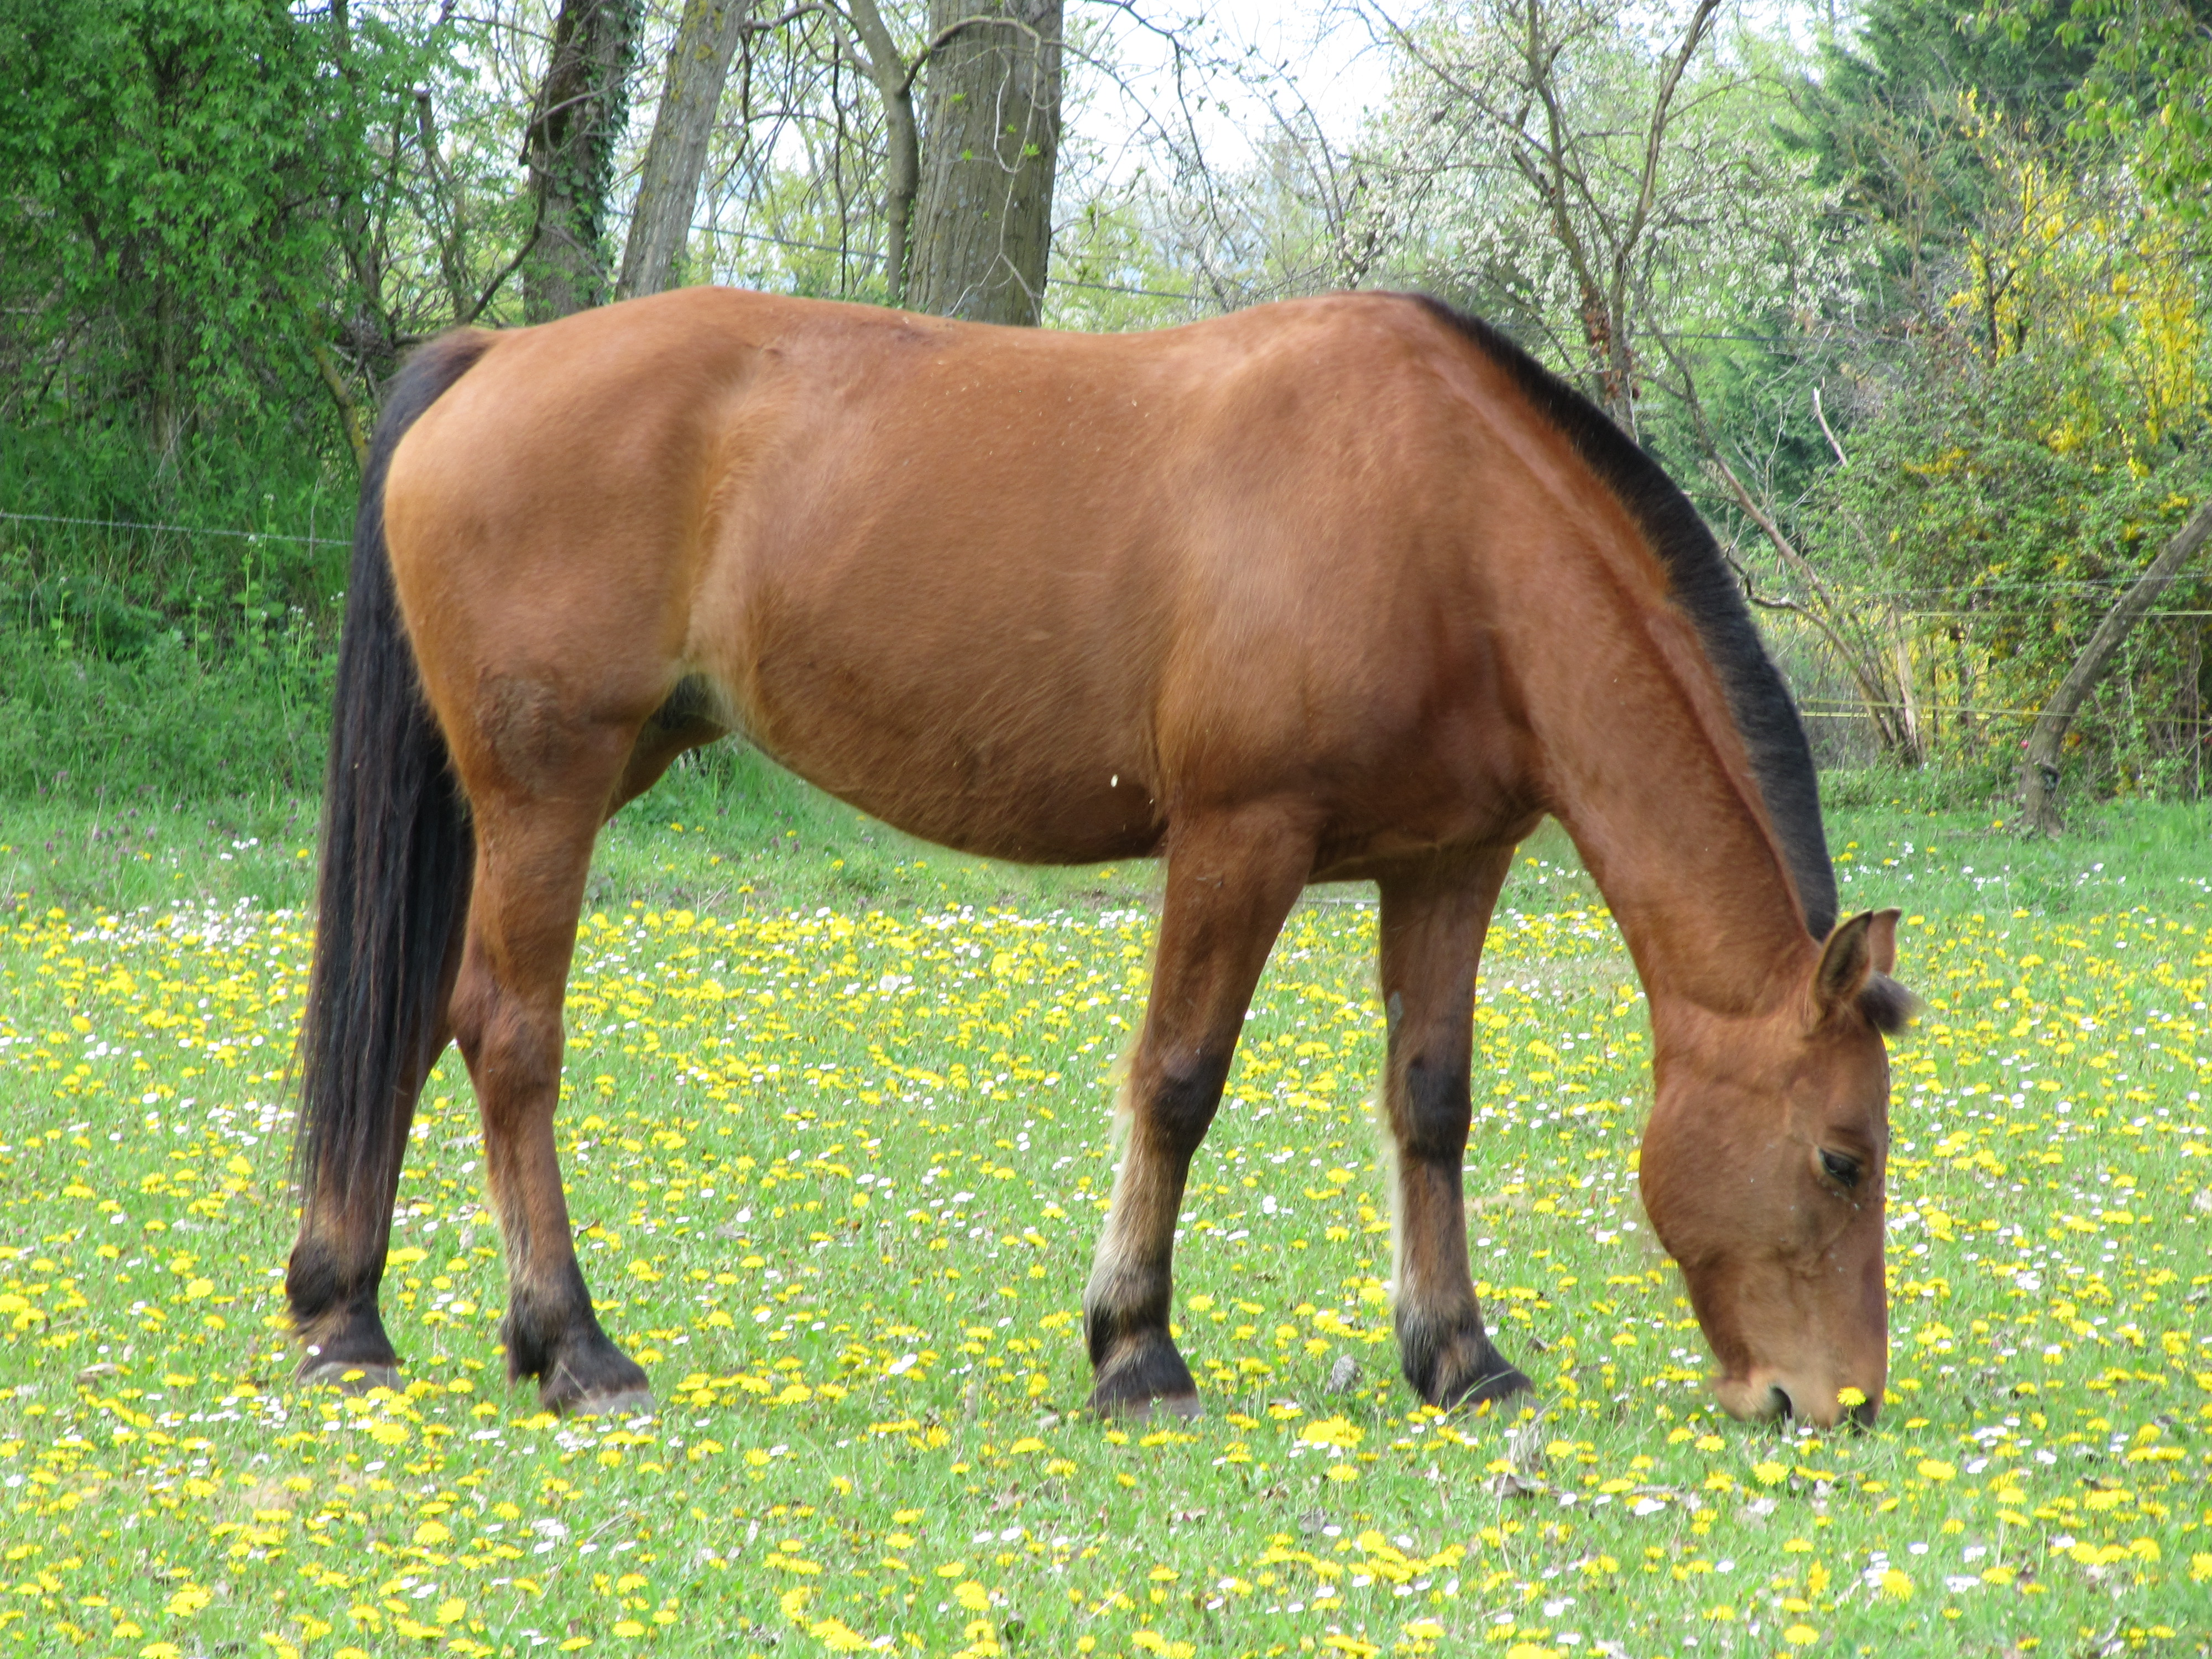 Horse Photos Gallery 100 Free Horse Wallpapers Big